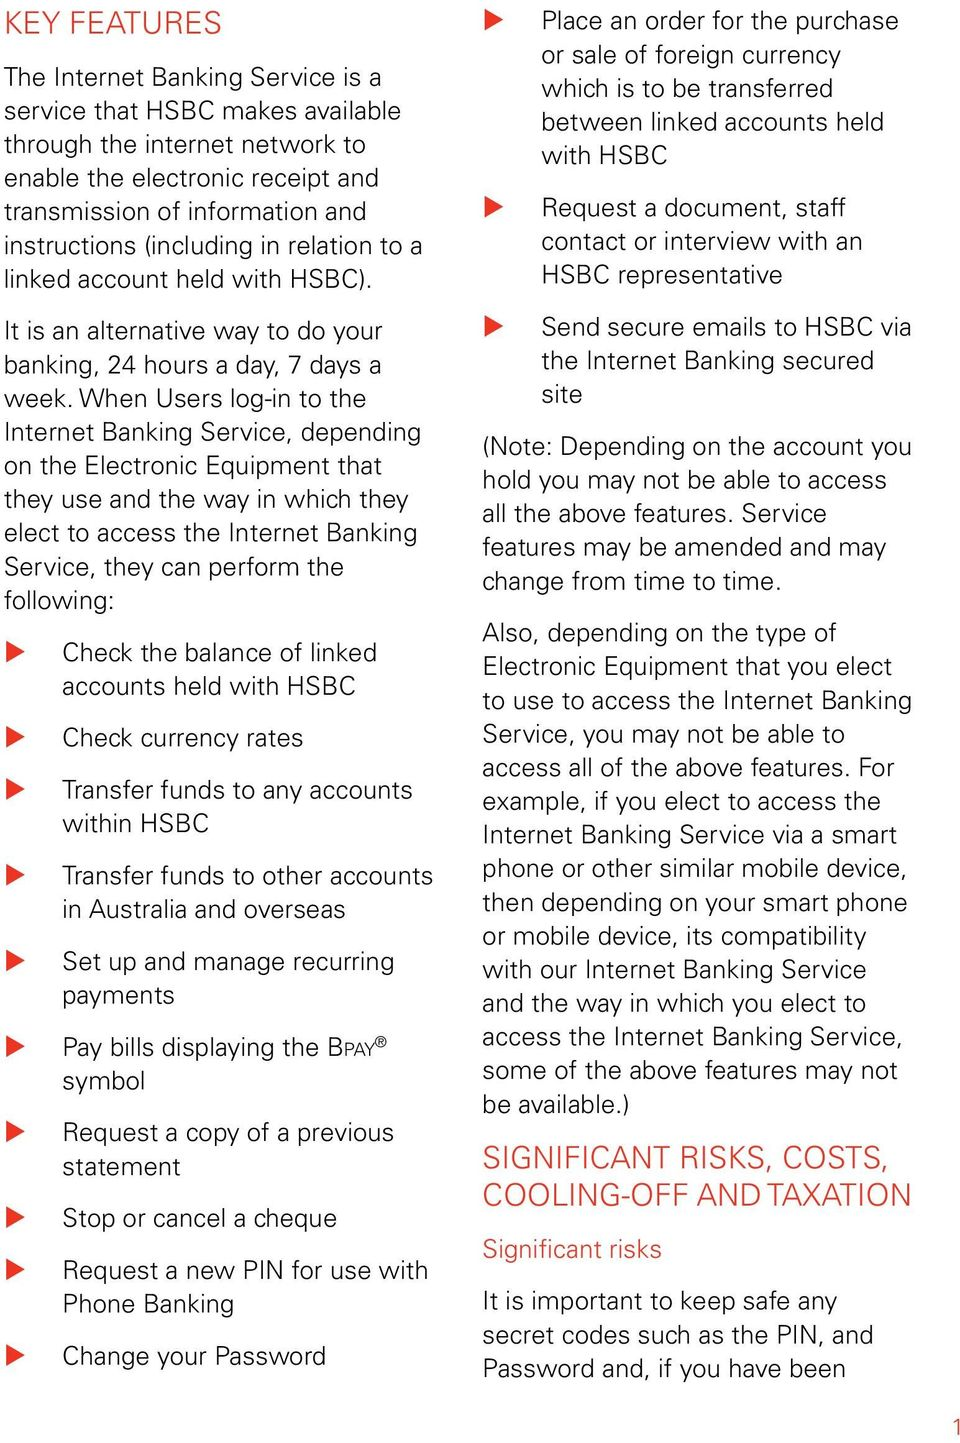 HSBC Internet Banking  Combined Product Disclosure Statement and